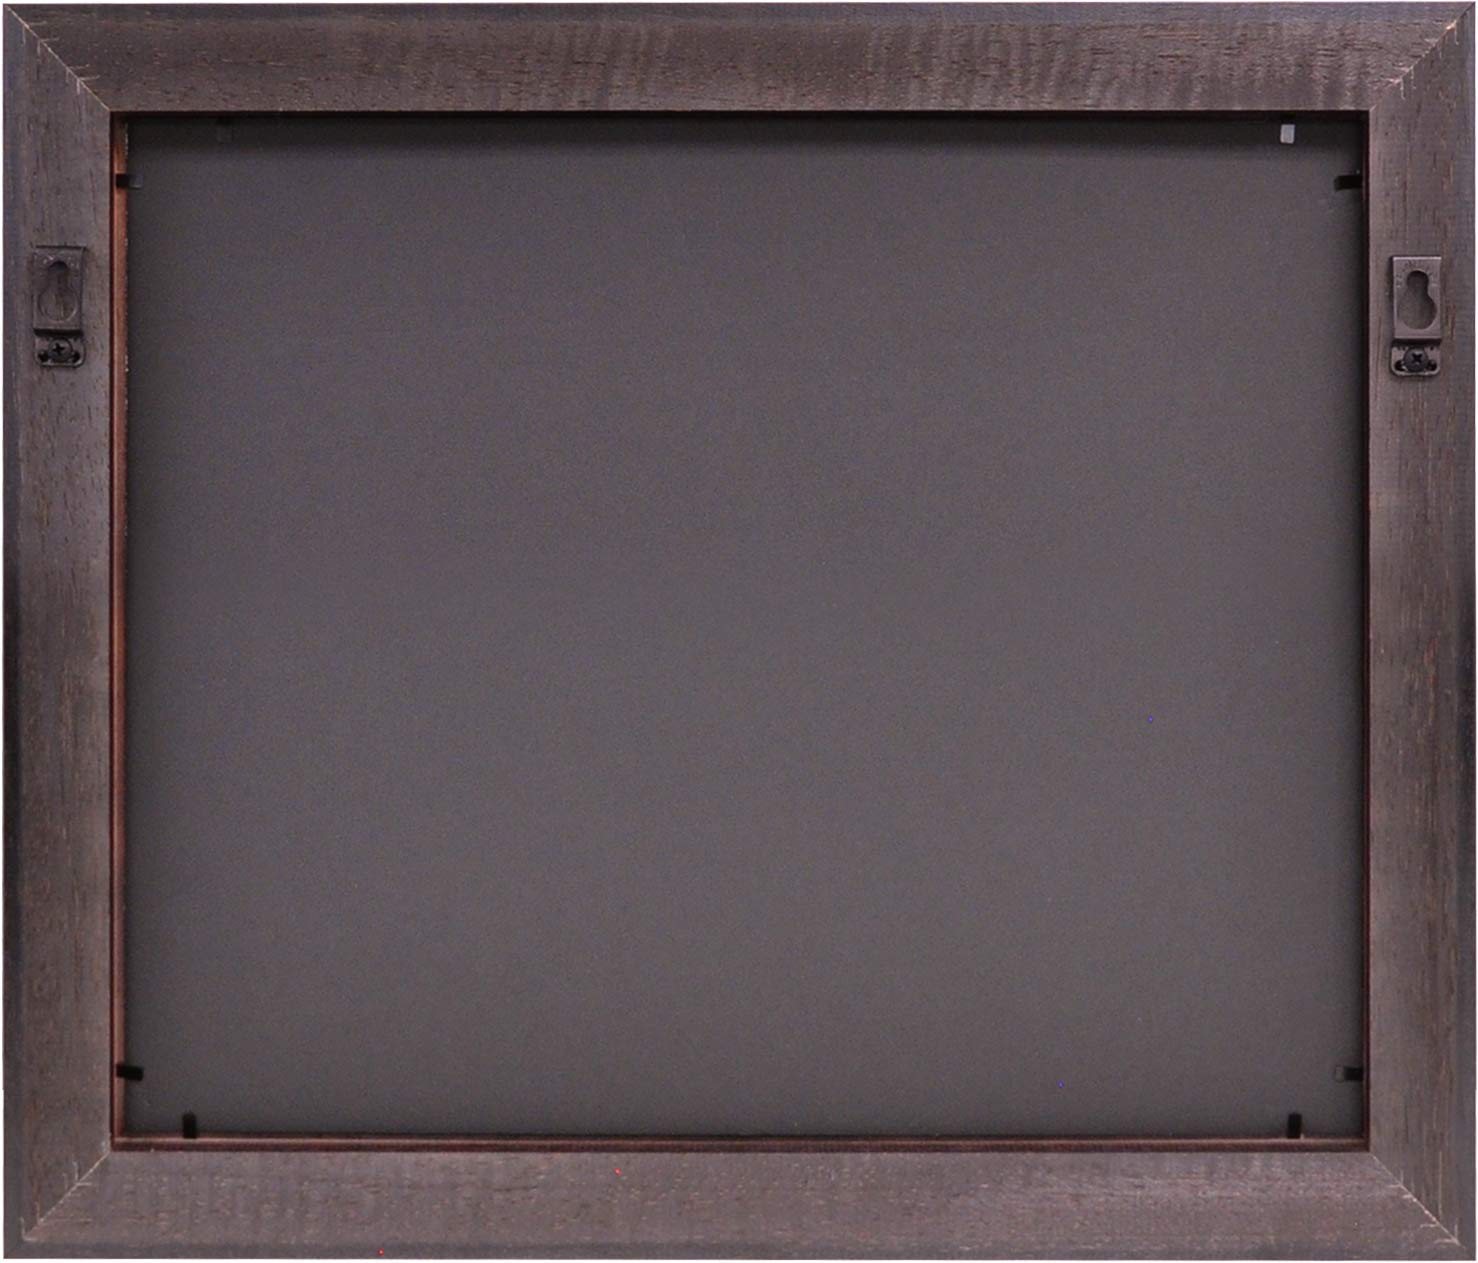 Campus Images TX960GED Texas Tech University Embossed Diploma Frame, 11'' x 14'', Gold by Campus Images (Image #3)